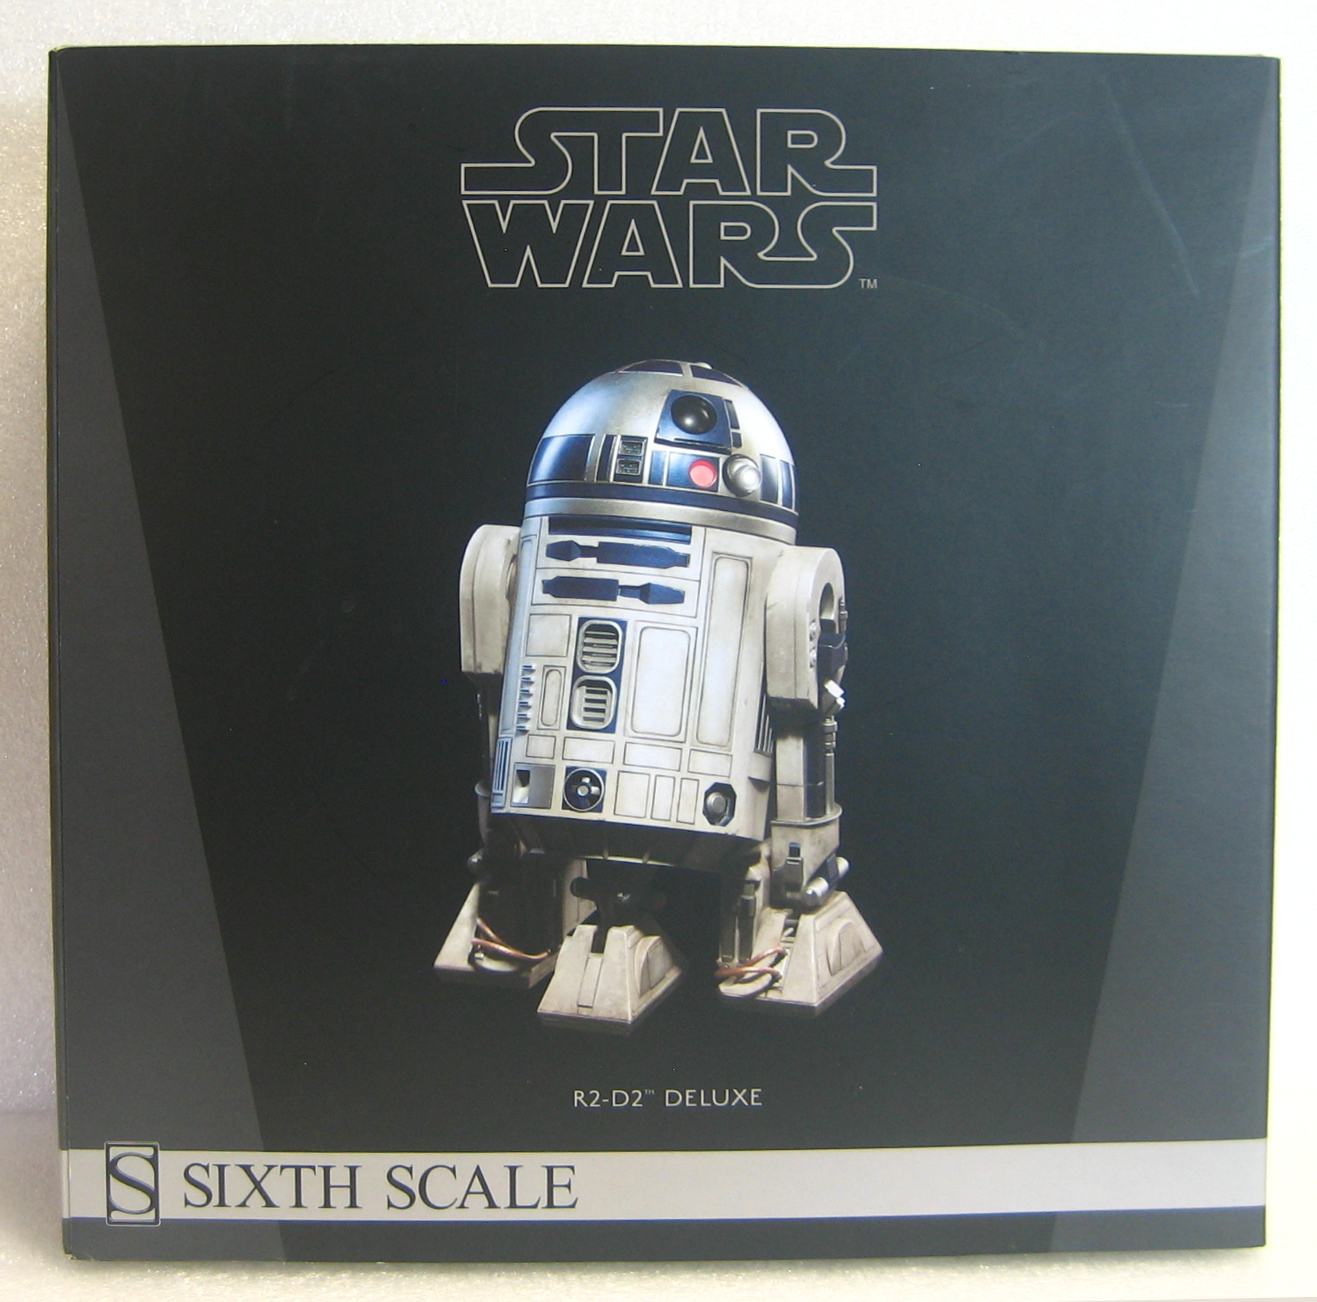 Sideshow Collectibles Star Wars R2-D2 Deluxe Version 1:6 Scale Figure - LAST ONE!